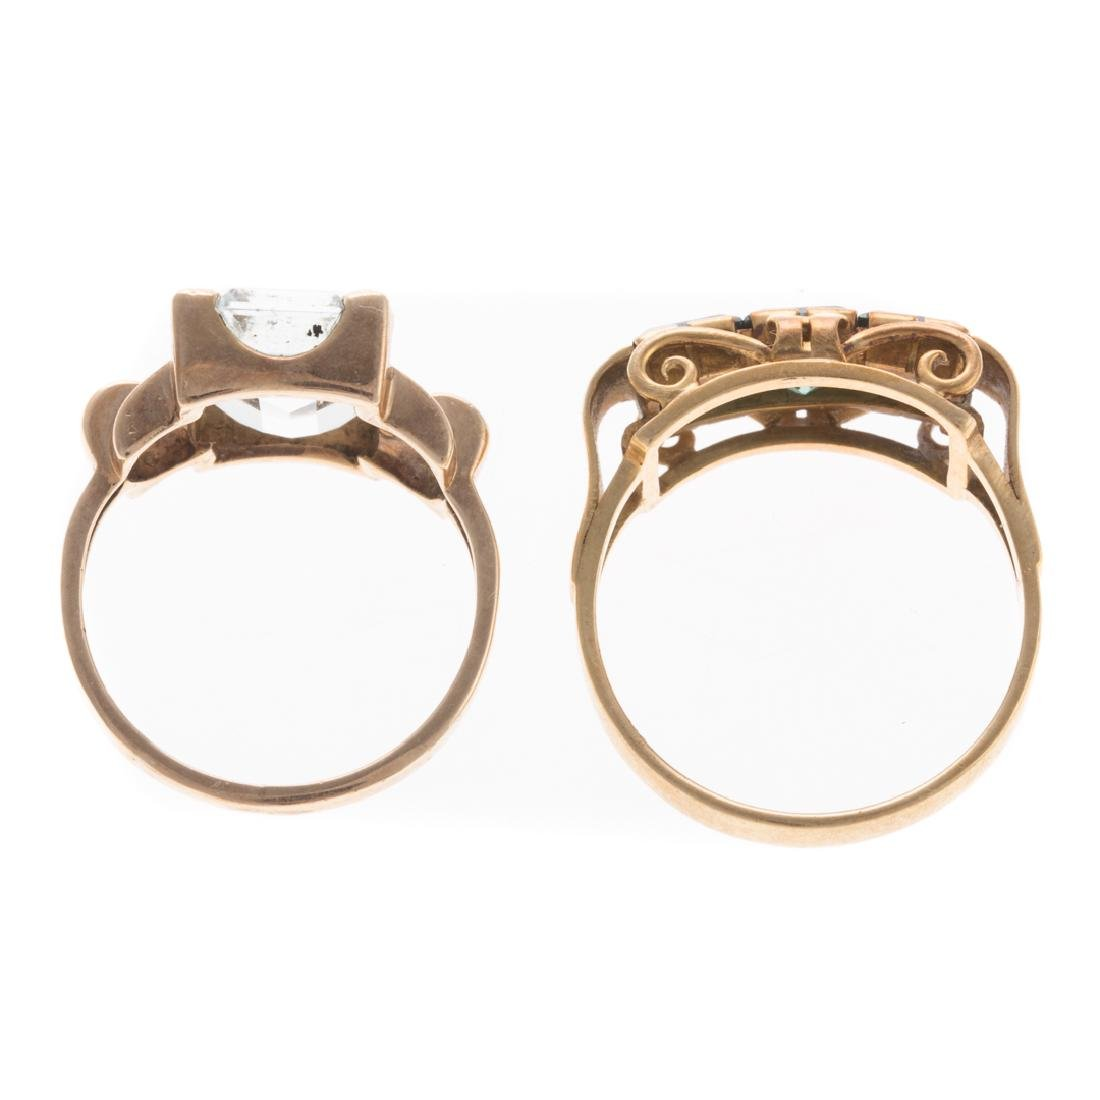 A Pair of Gemstone Rings in Gold - 3